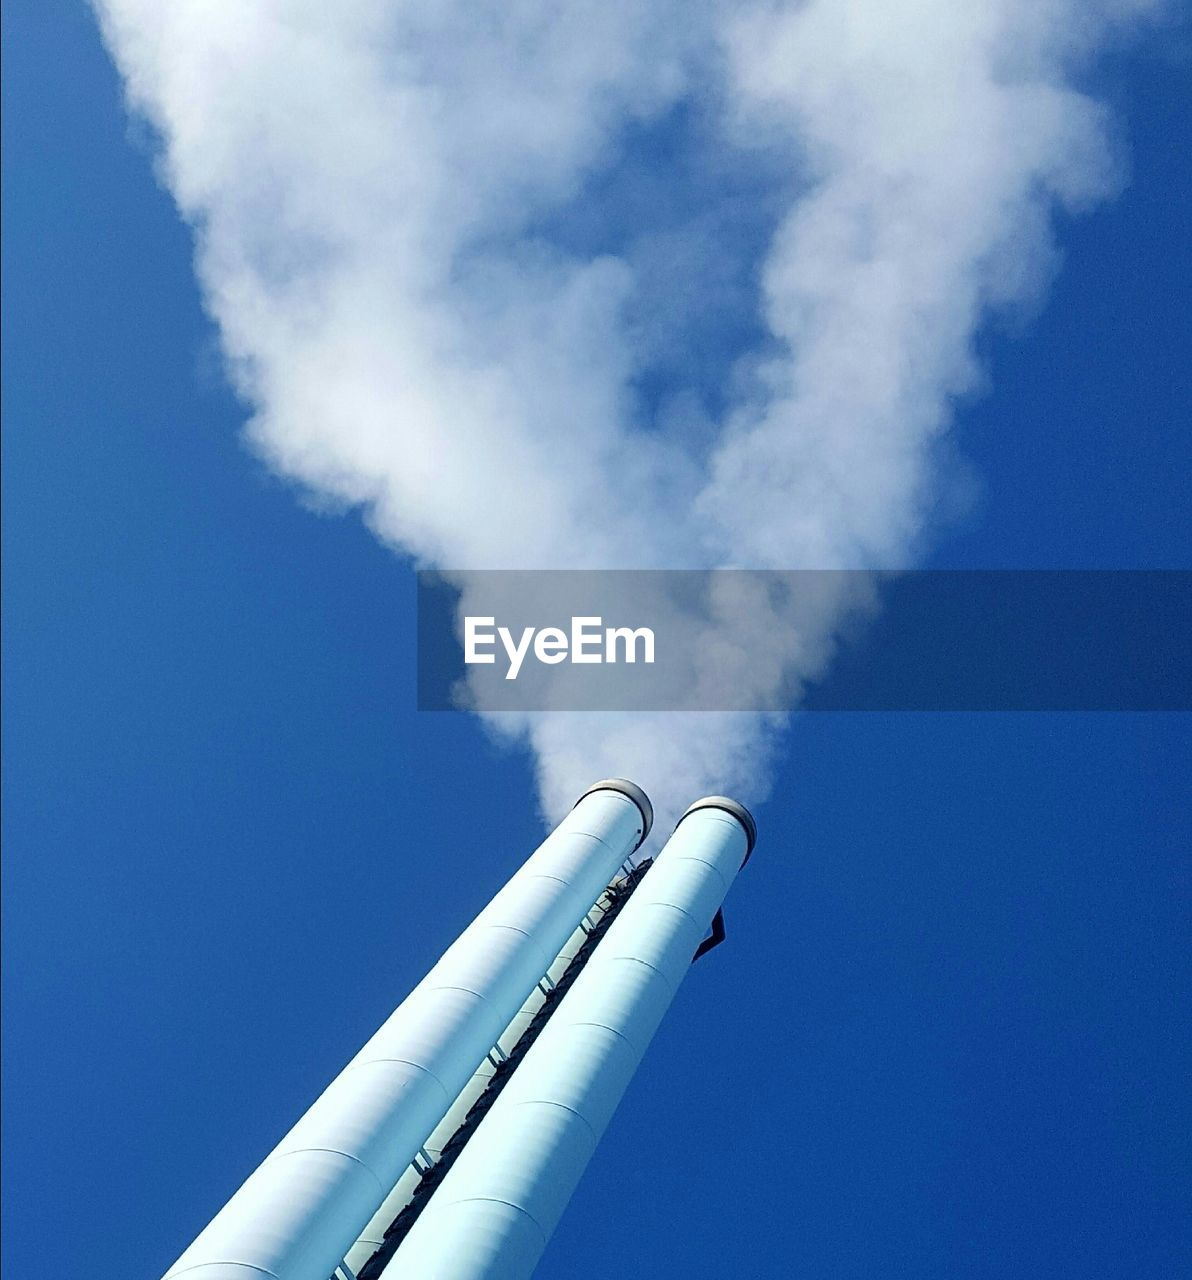 factory, pollution, industry, low angle view, smoke stack, smoke - physical structure, sky, environmental issues, blue, air pollution, emitting, day, building exterior, nature, environmental damage, no people, chimney, environment, built structure, fuel and power generation, outdoors, fumes